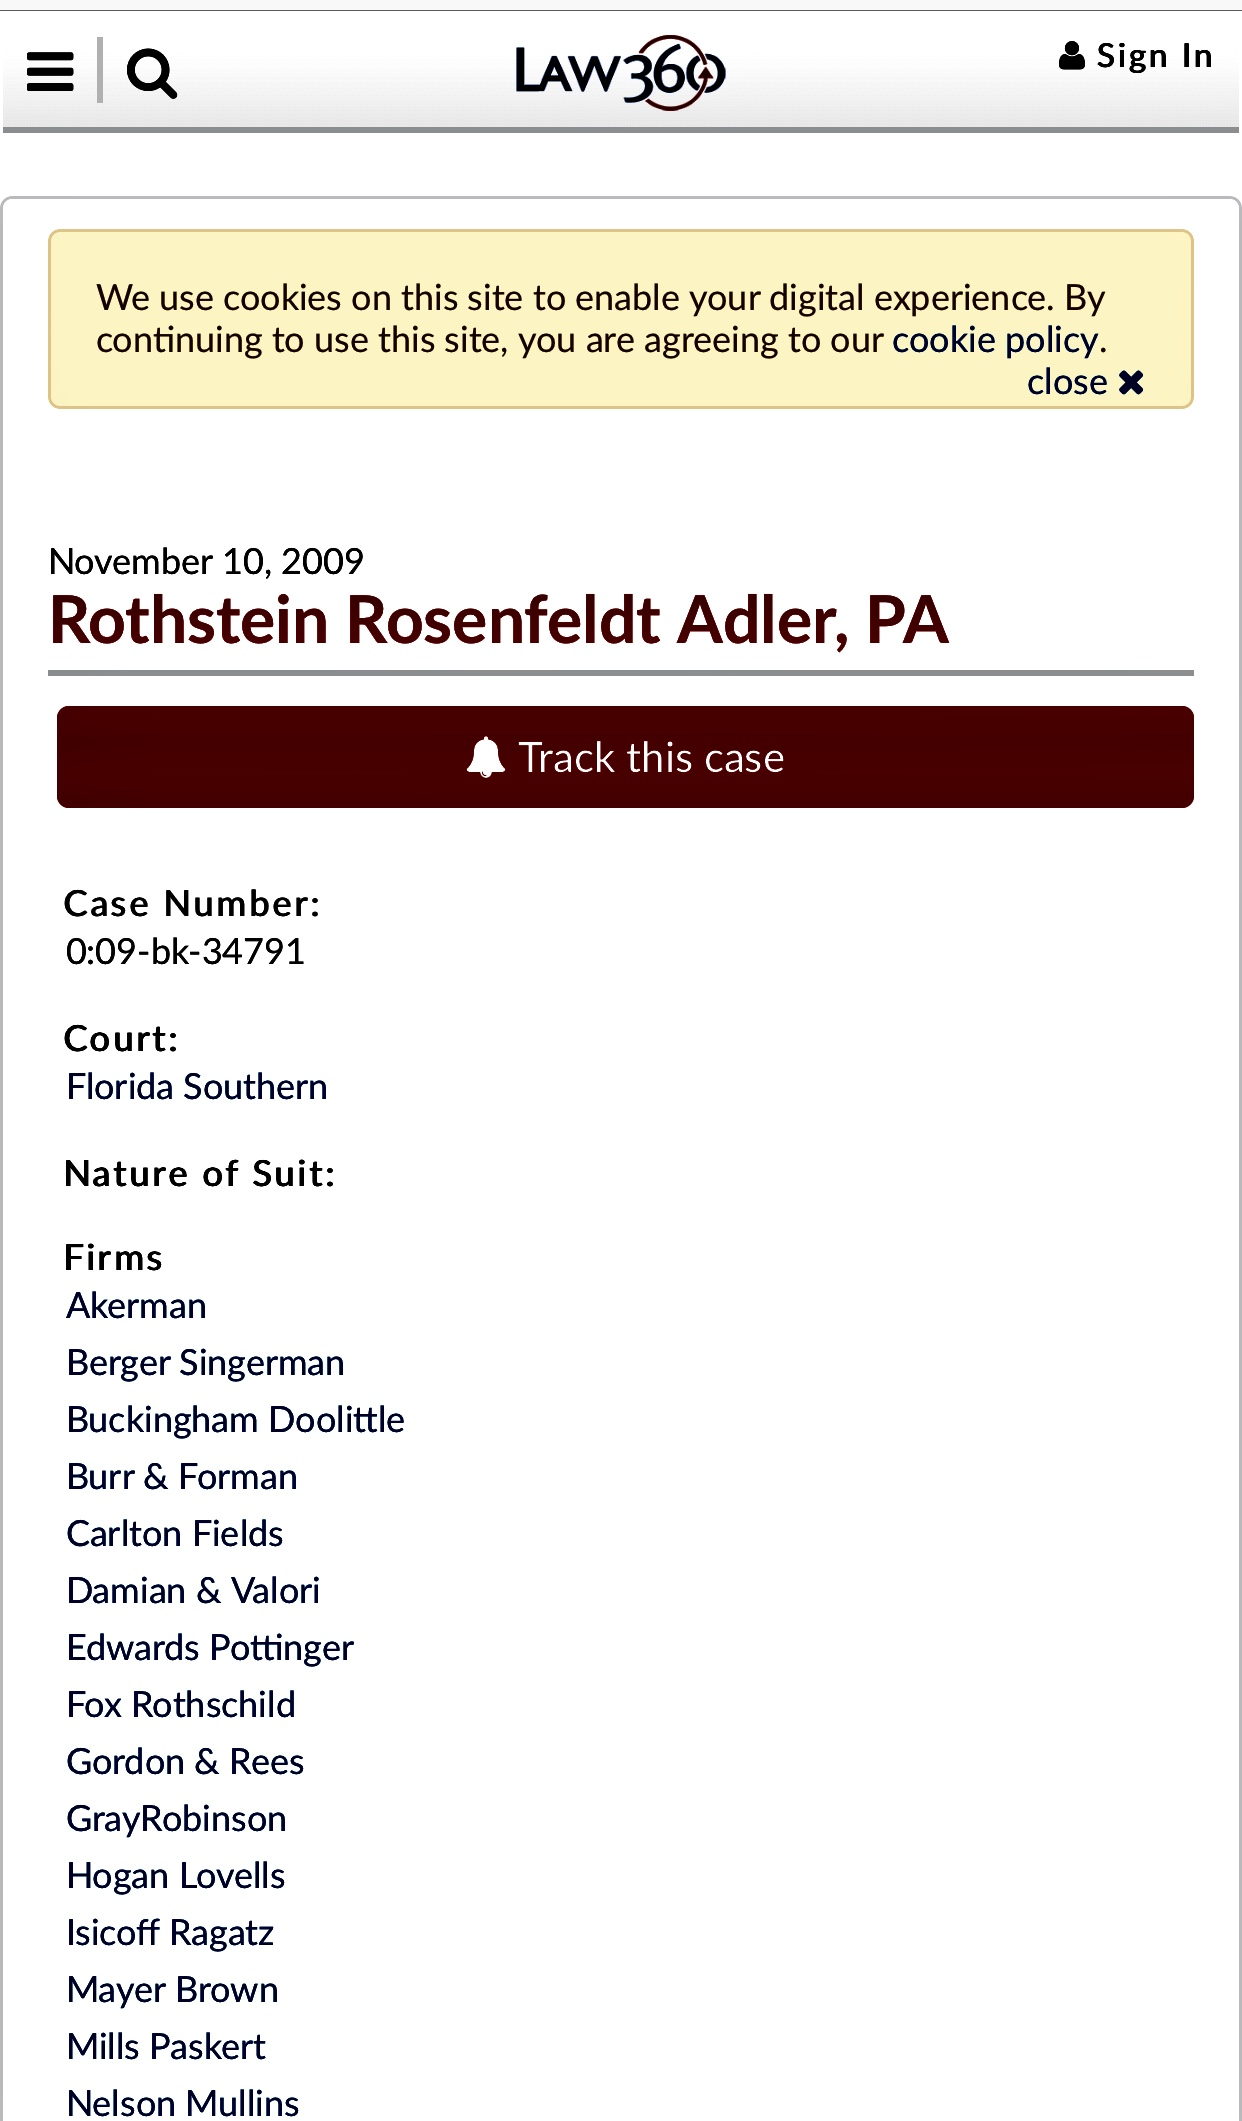 Jeffrey Epstein, Rothstein Rosenfedt Adler, And The World's Largest $1.2 Billion Dollar Ponzi Scheme